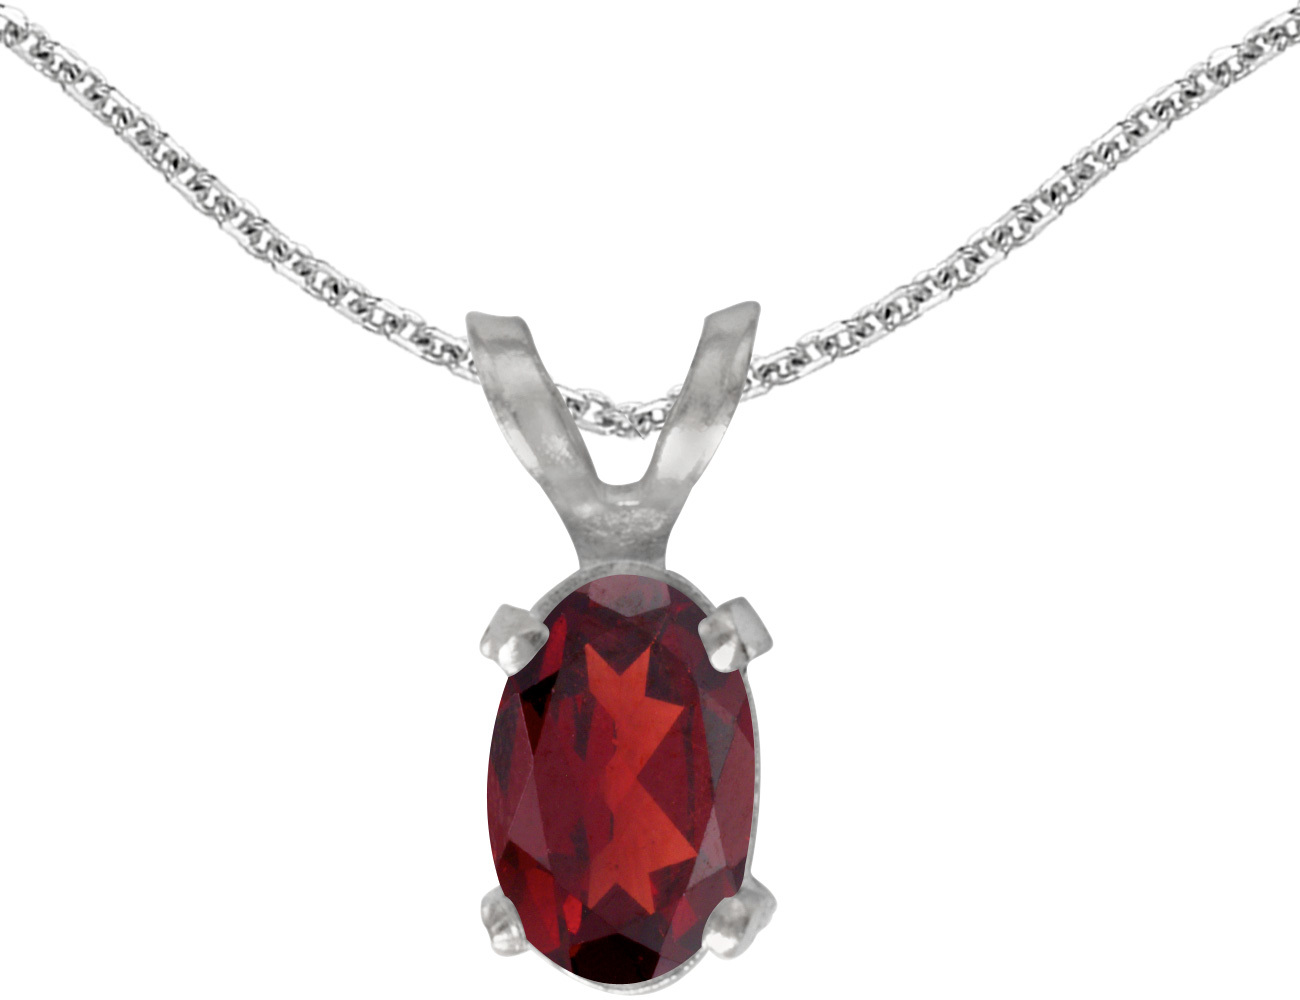 14k White Gold Oval Garnet Pendant (Chain NOT included)